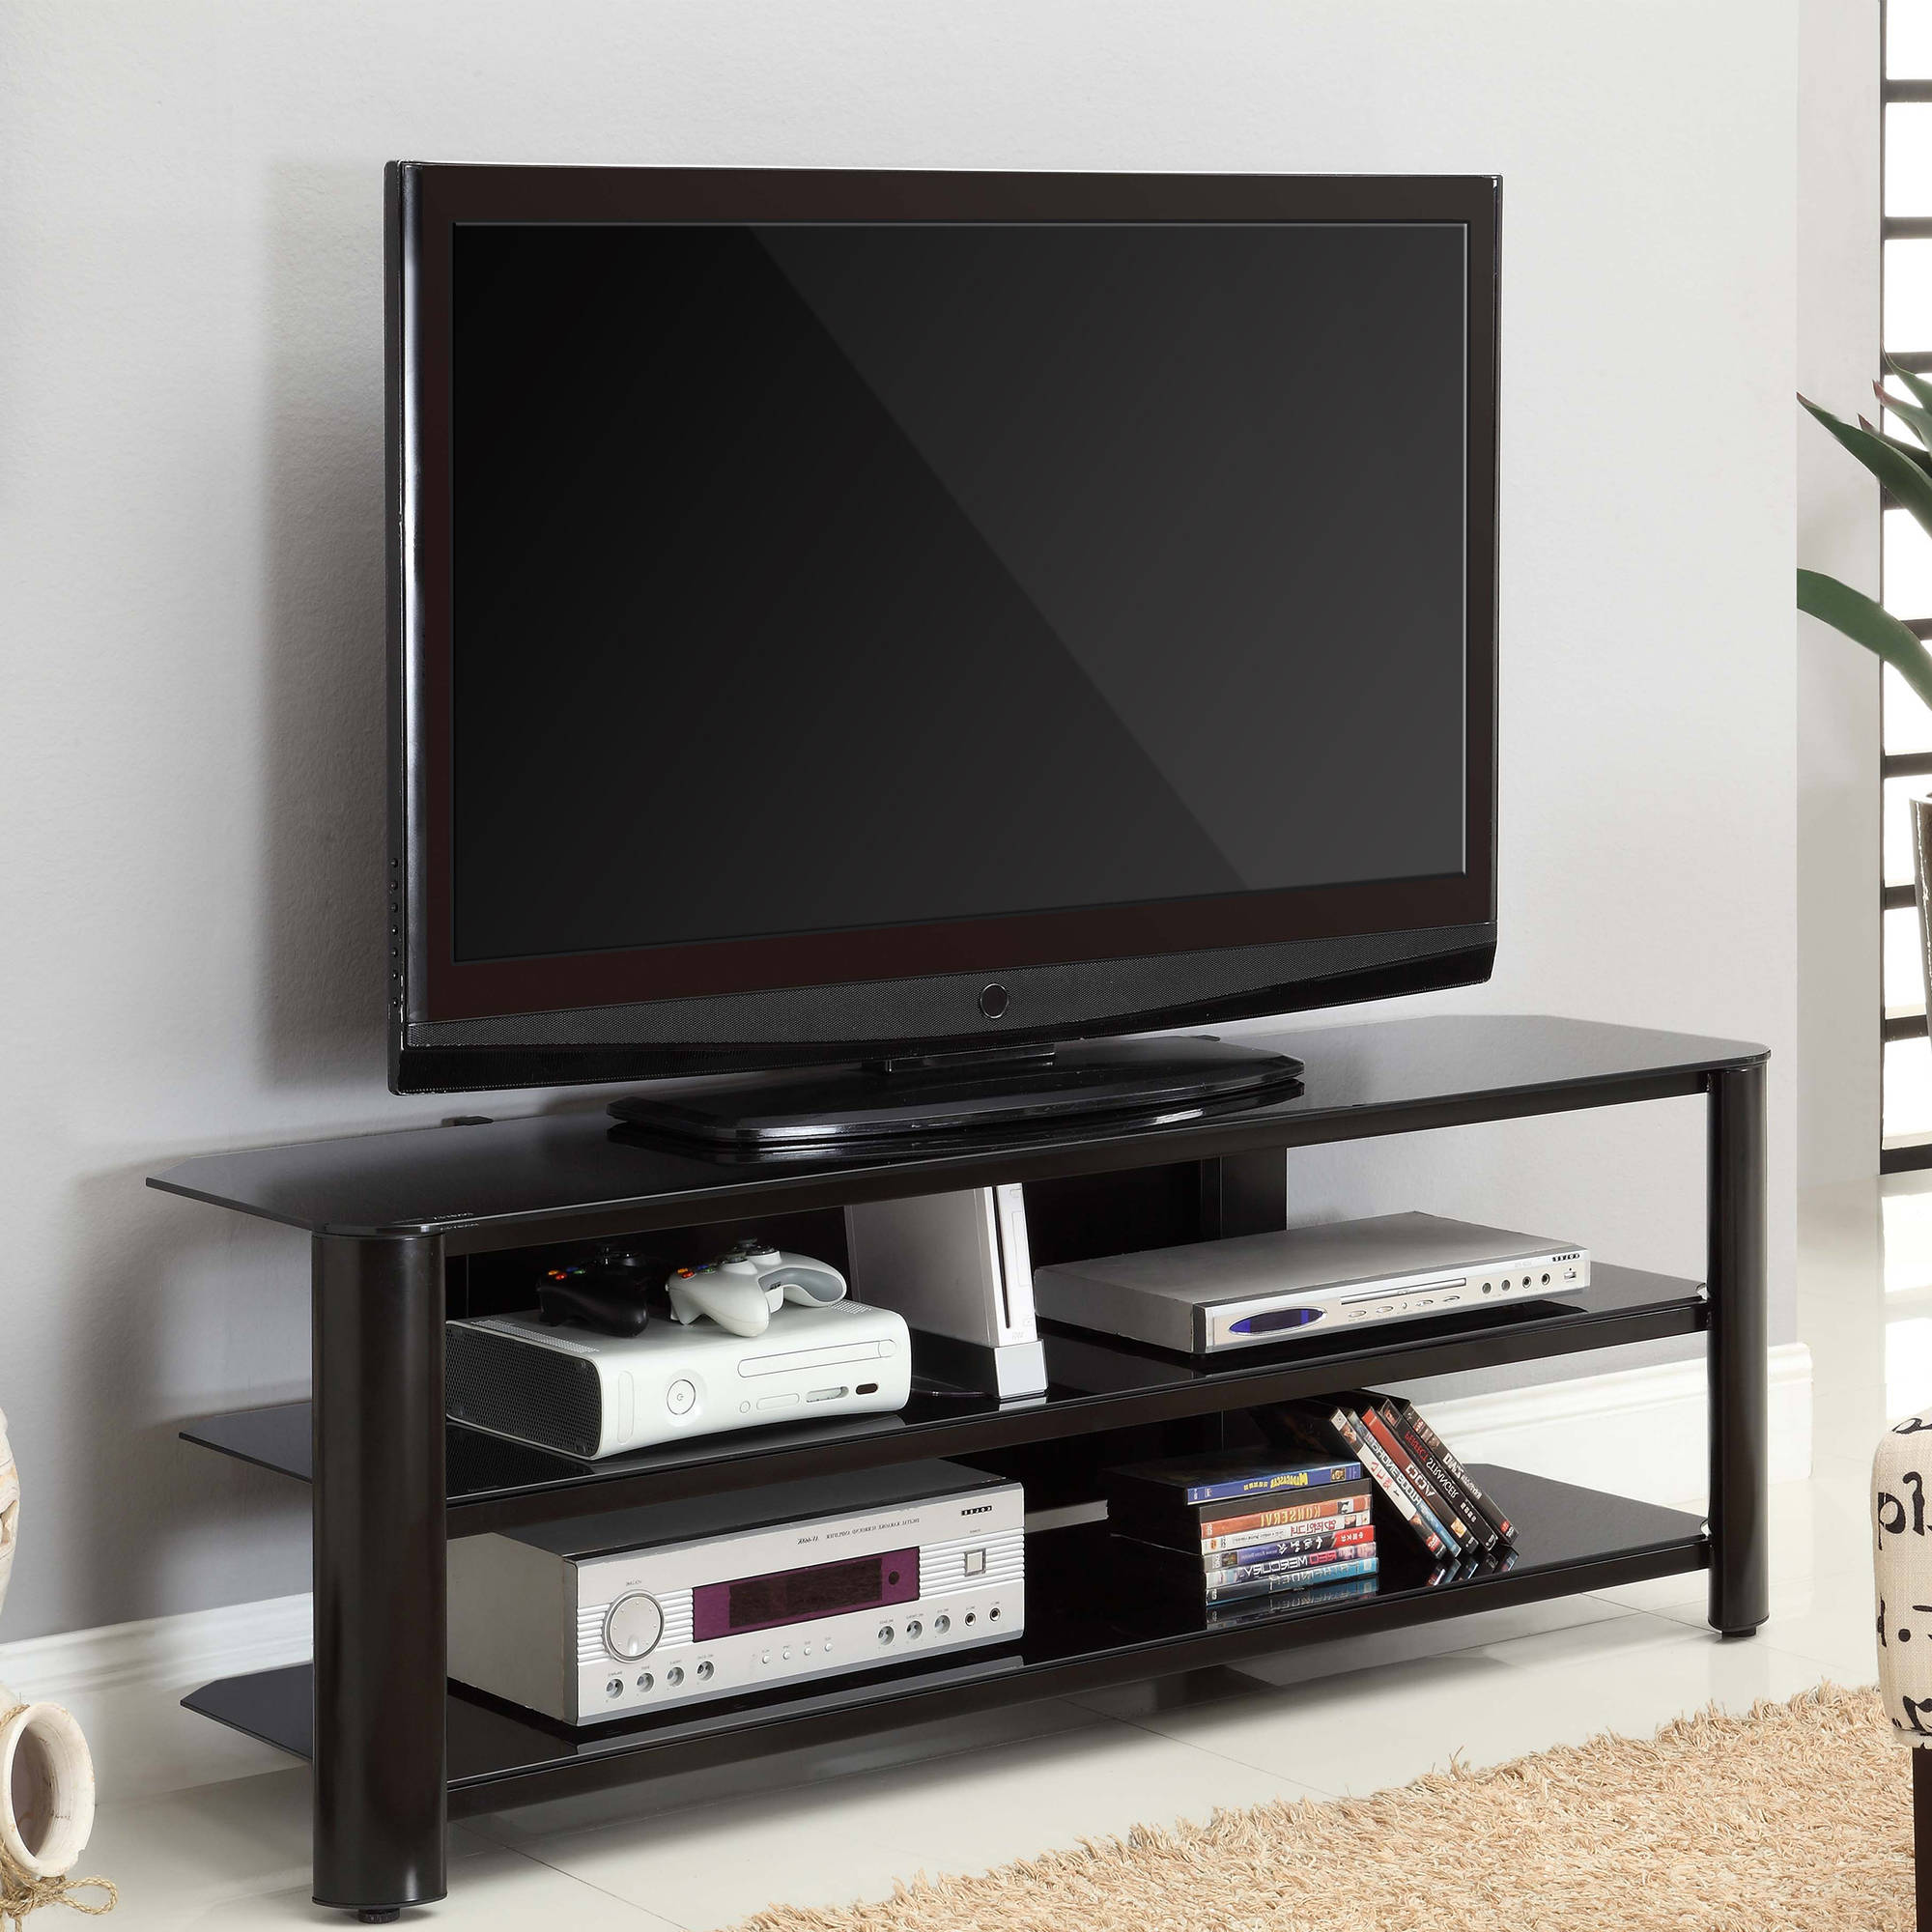 """Innovex Tempered Black Glass with Black Frame Oxford 58 TV Stand for TVs up to 60"""", Black"""